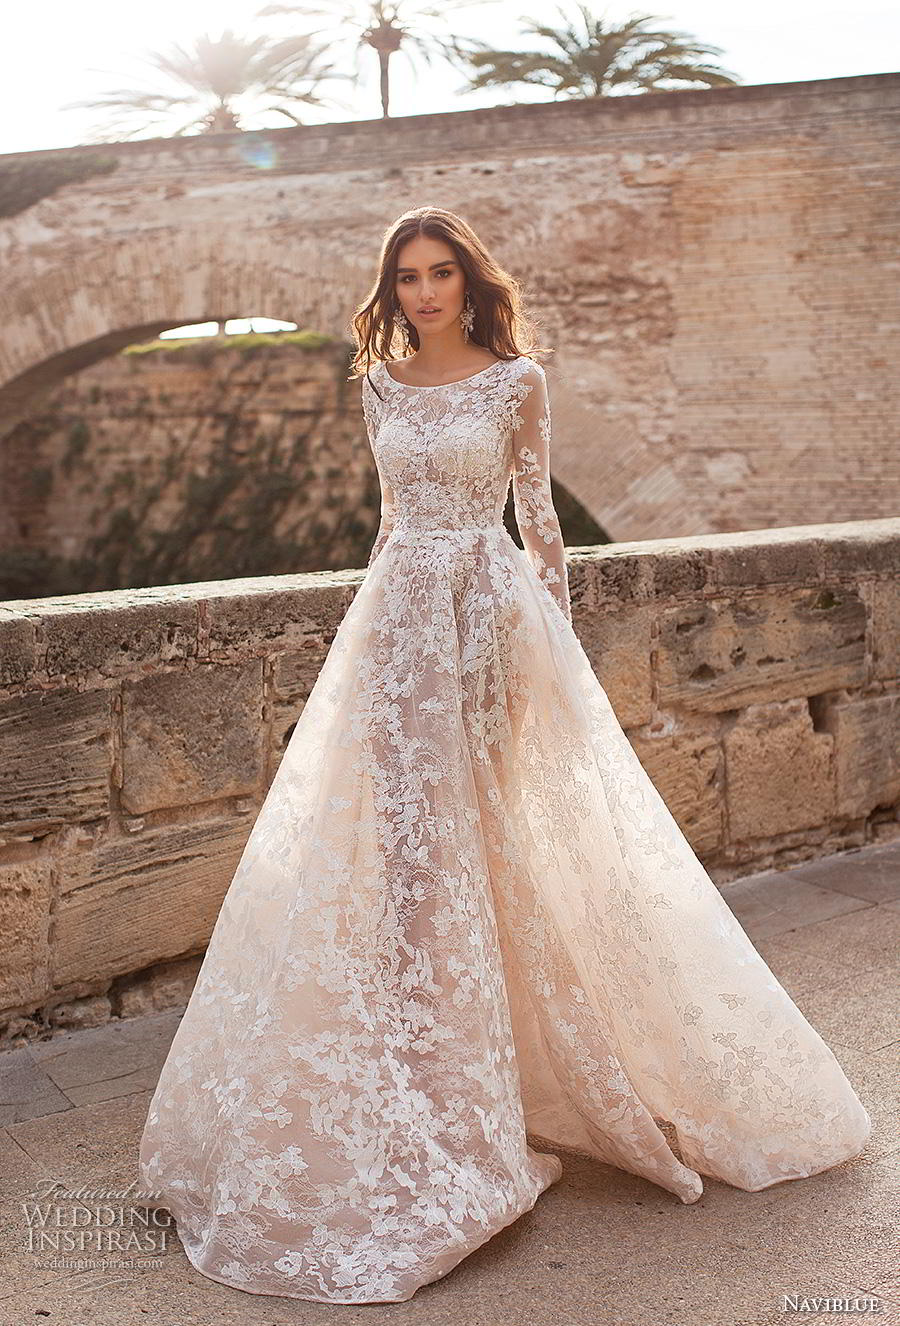 569a95cb078a naviblue 2019 bridal long sleeves bateau neck full embellishment elegant  modest a line wedding dress covered